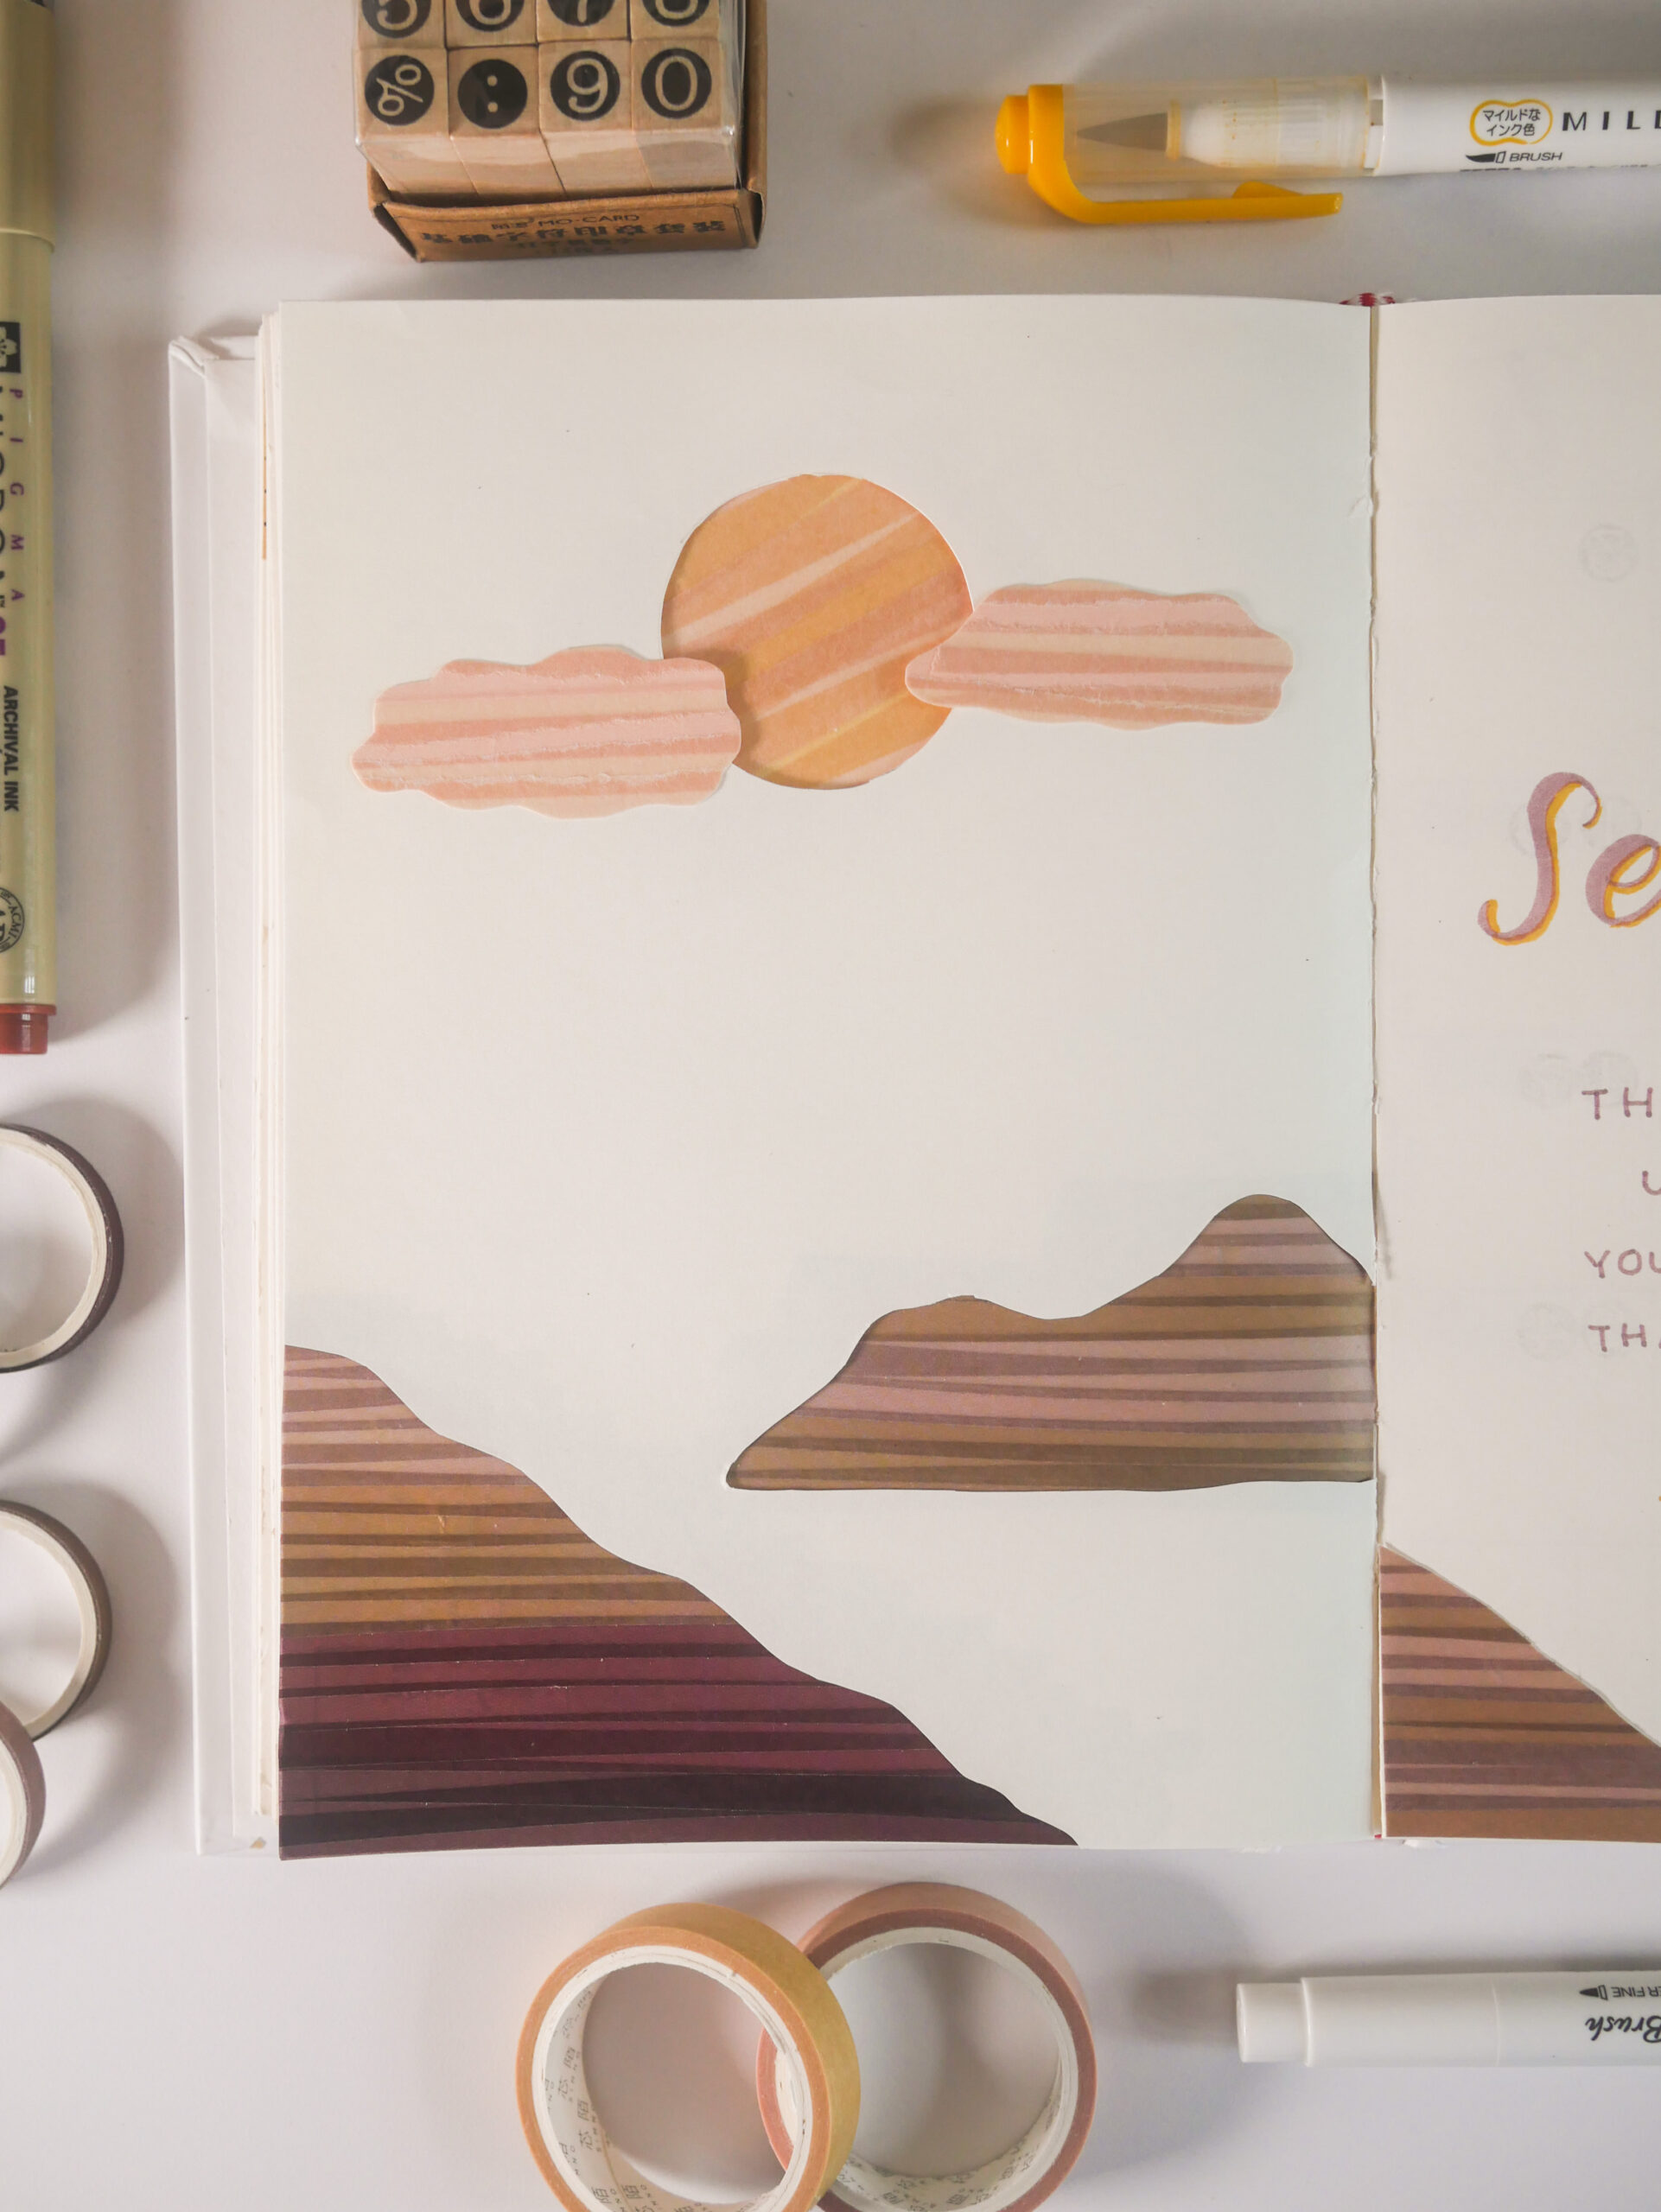 10 Creative Washi Tape Art Projects You Can DIY